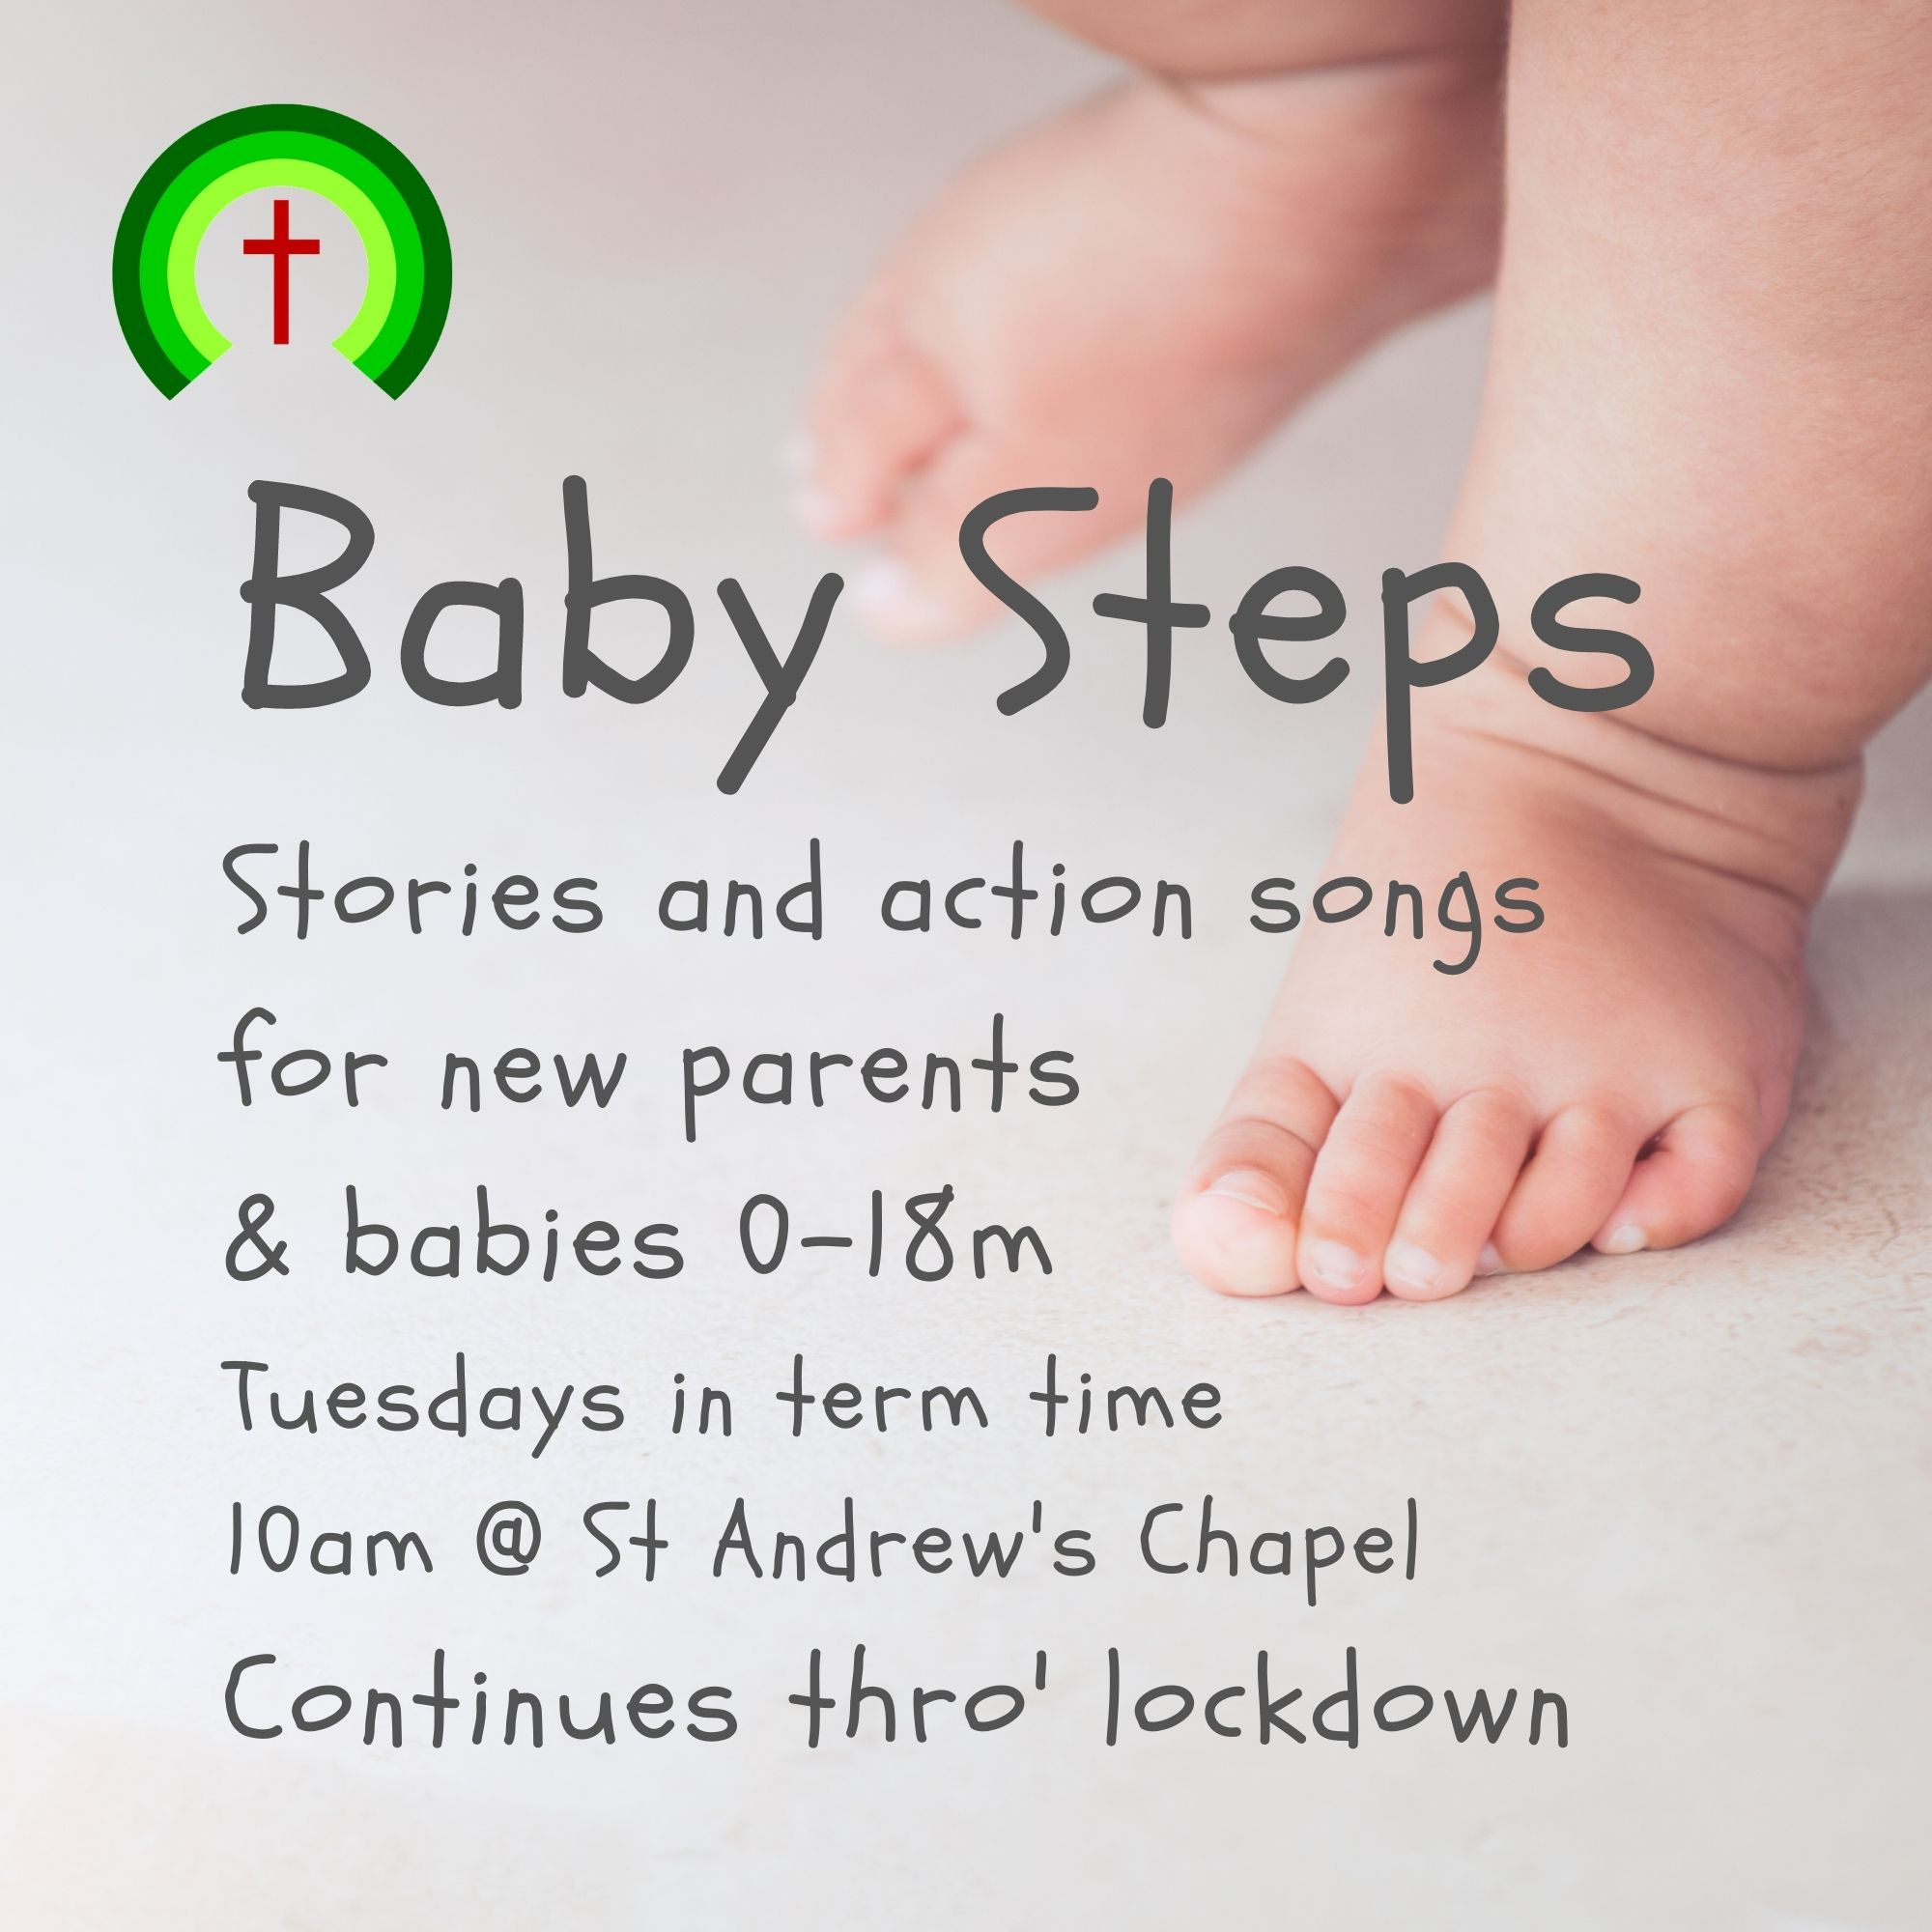 A3 square Baby Steps Jan 21